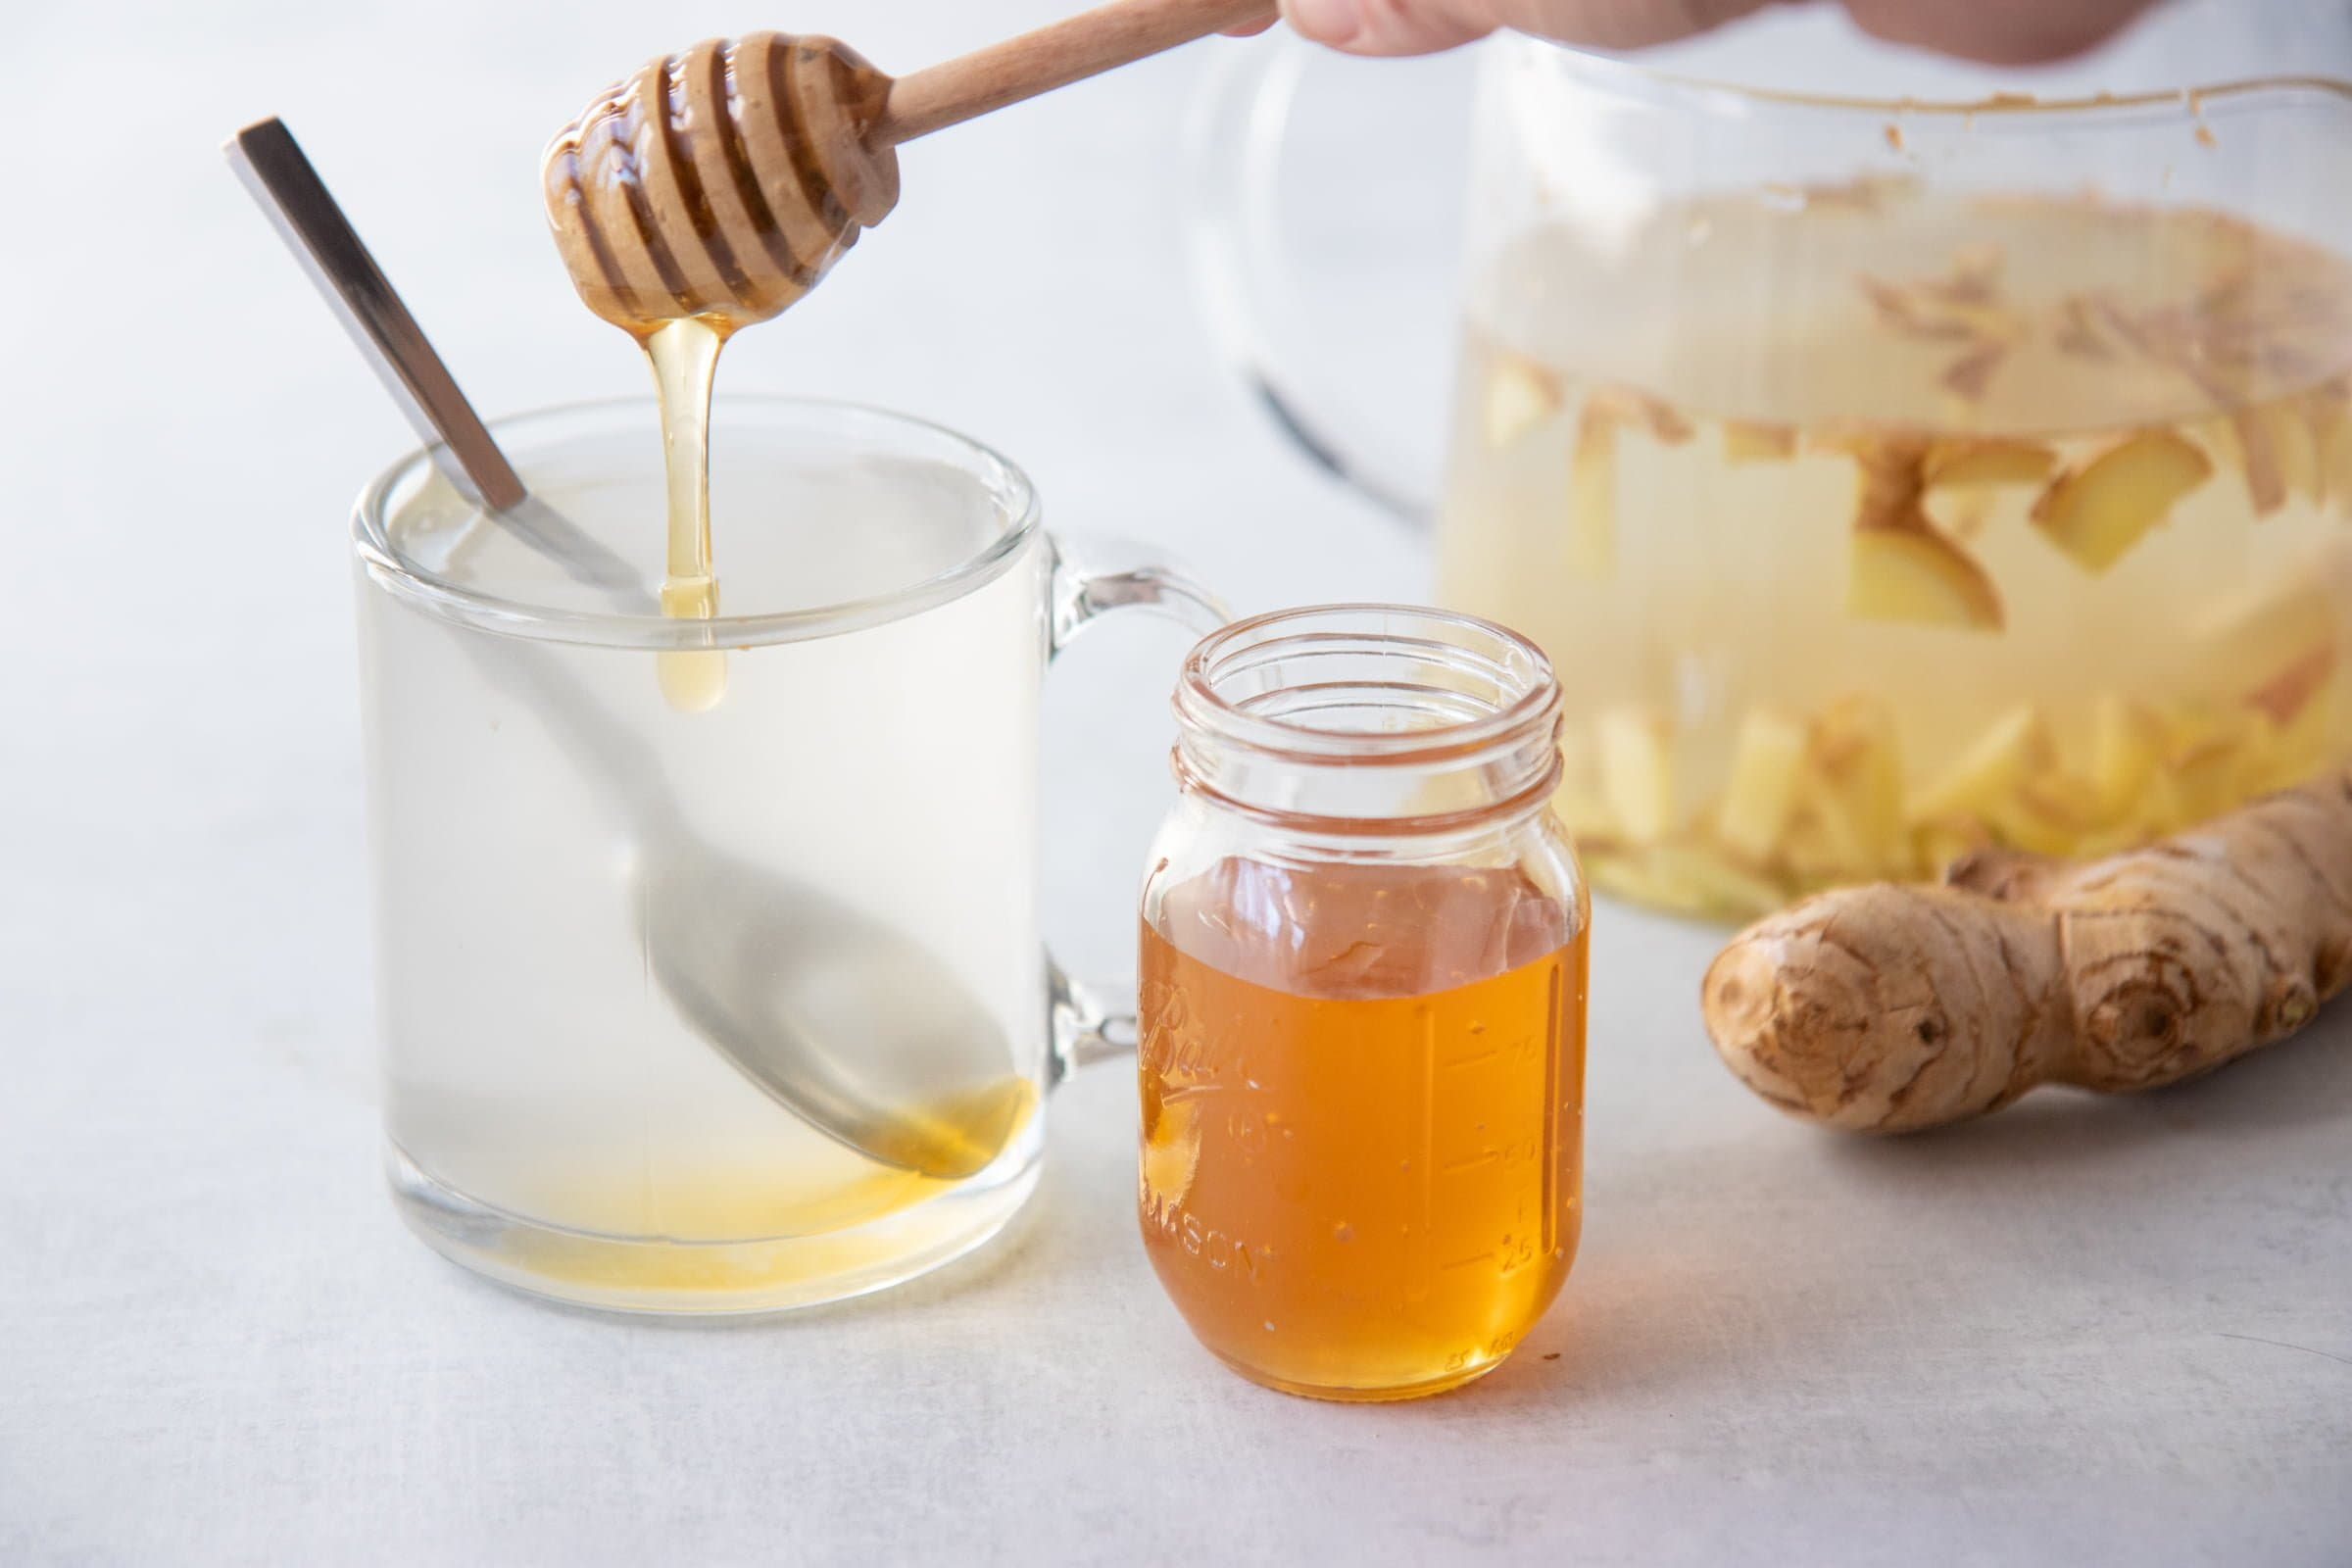 Honey stirrer drizzling honey into a clear mug of ginger tea